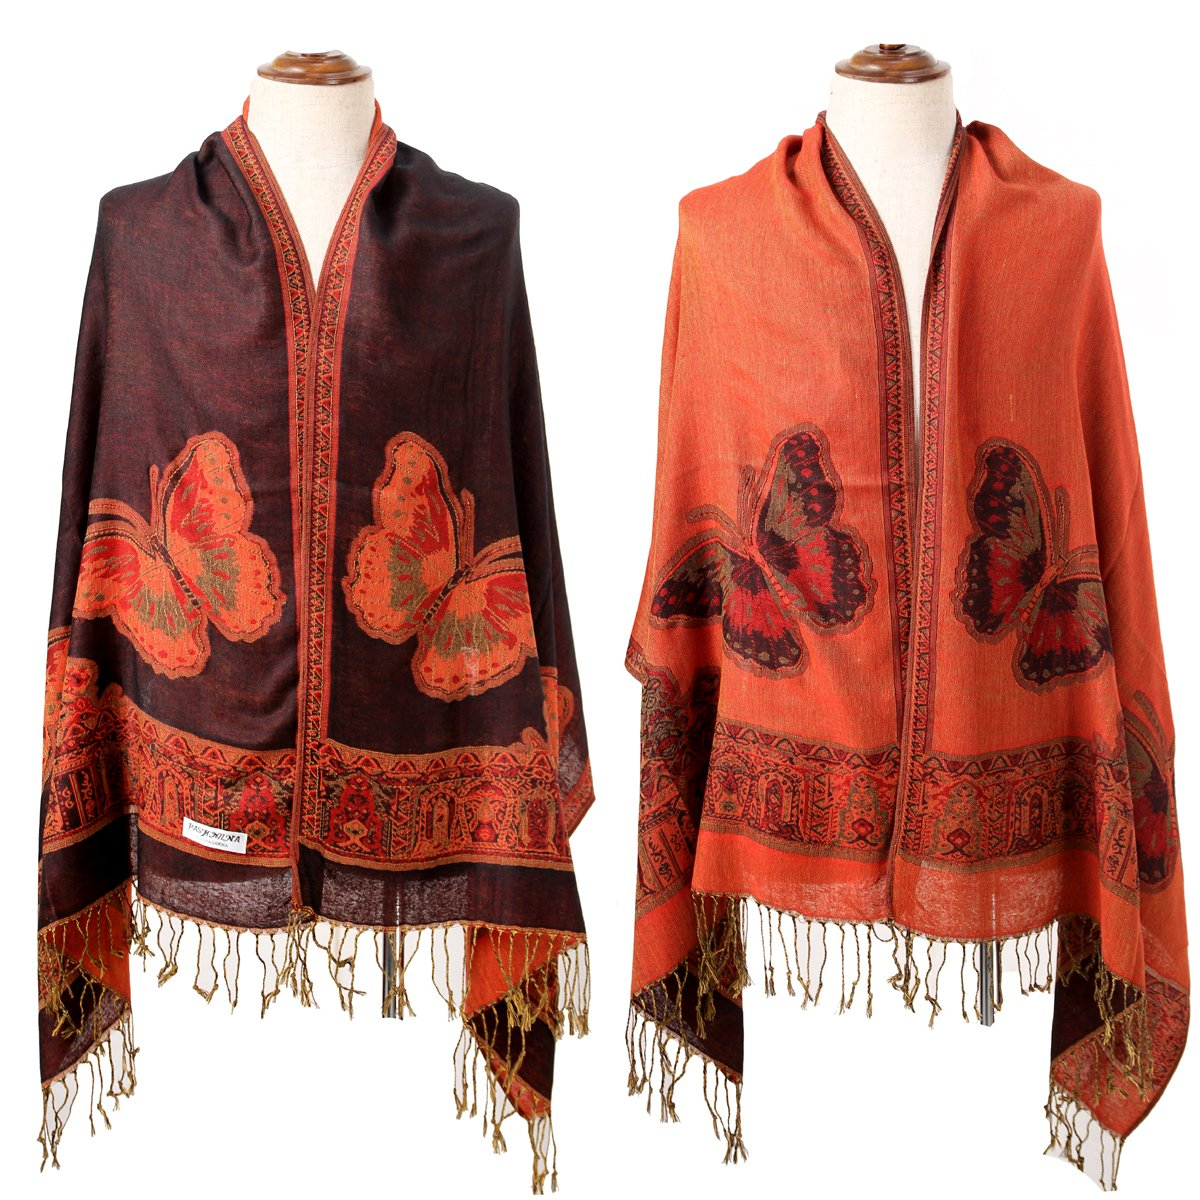 New Black Red Women's Reversible Two-Face Silk Pashmina Shawl Scarf Butterfly by CK sky Scarf